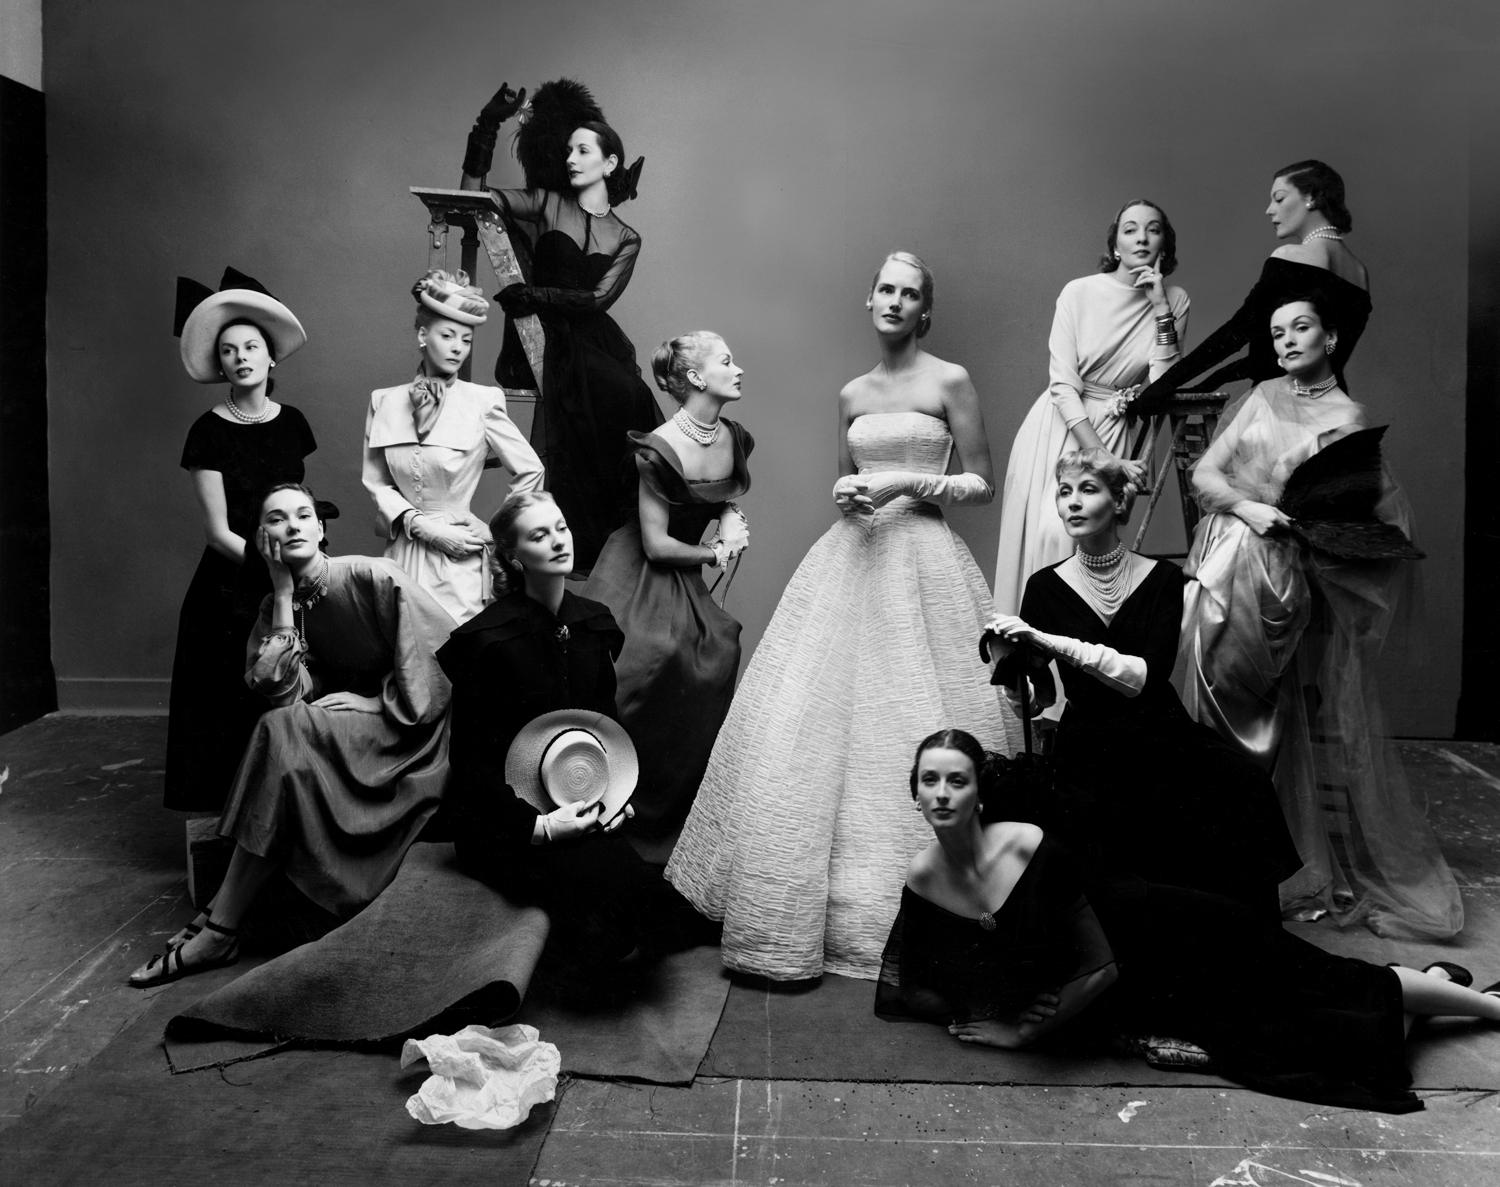 The Twelve Most Photographed Models, New York, 1947 © Condé Nast / The Irving Penn Foundation